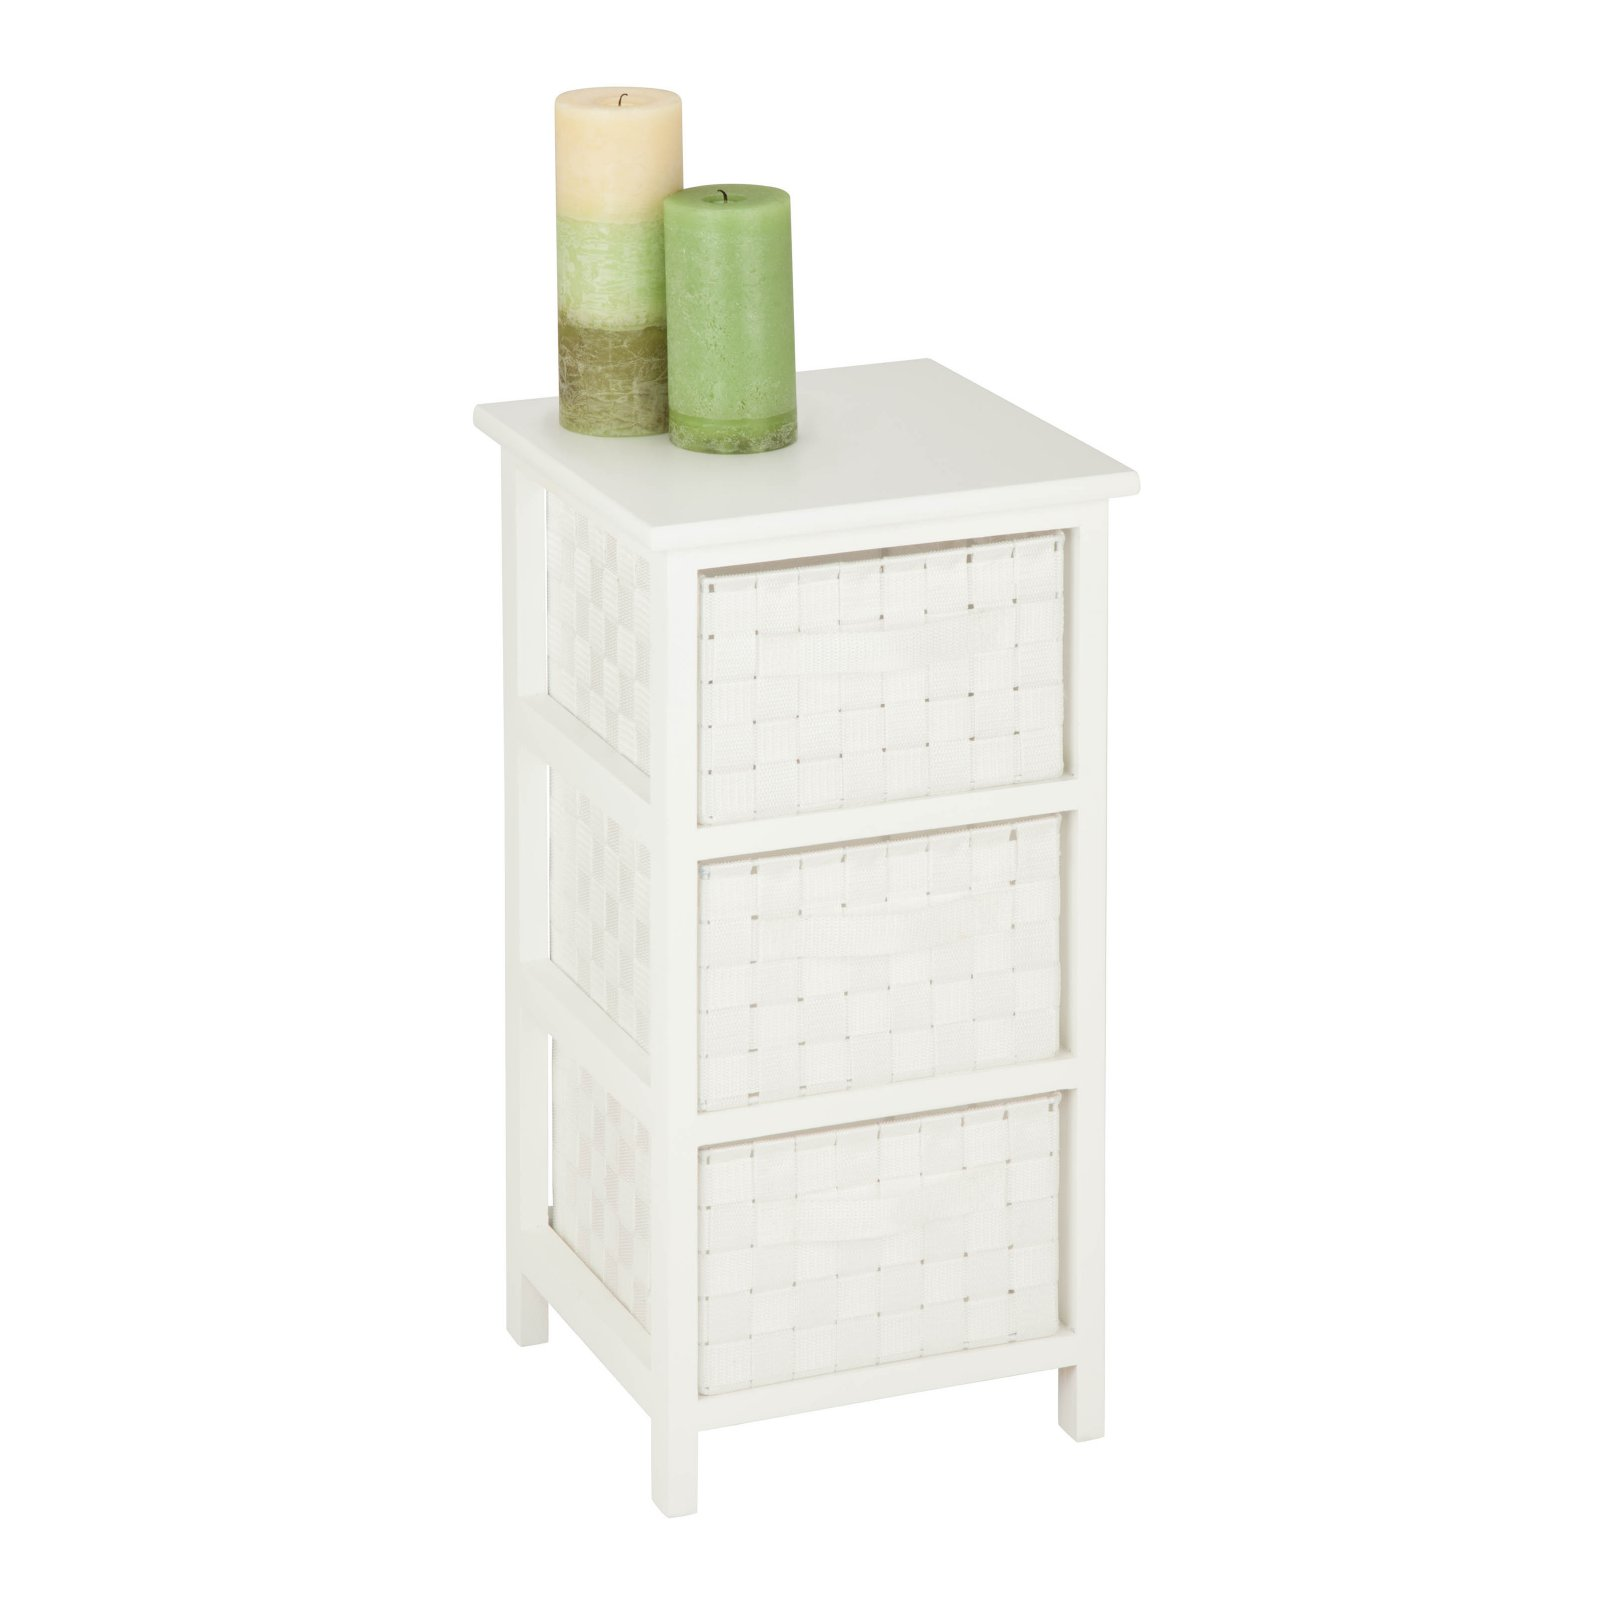 Honey Can Do Storage Chest With 3 Wicker Drawers, White